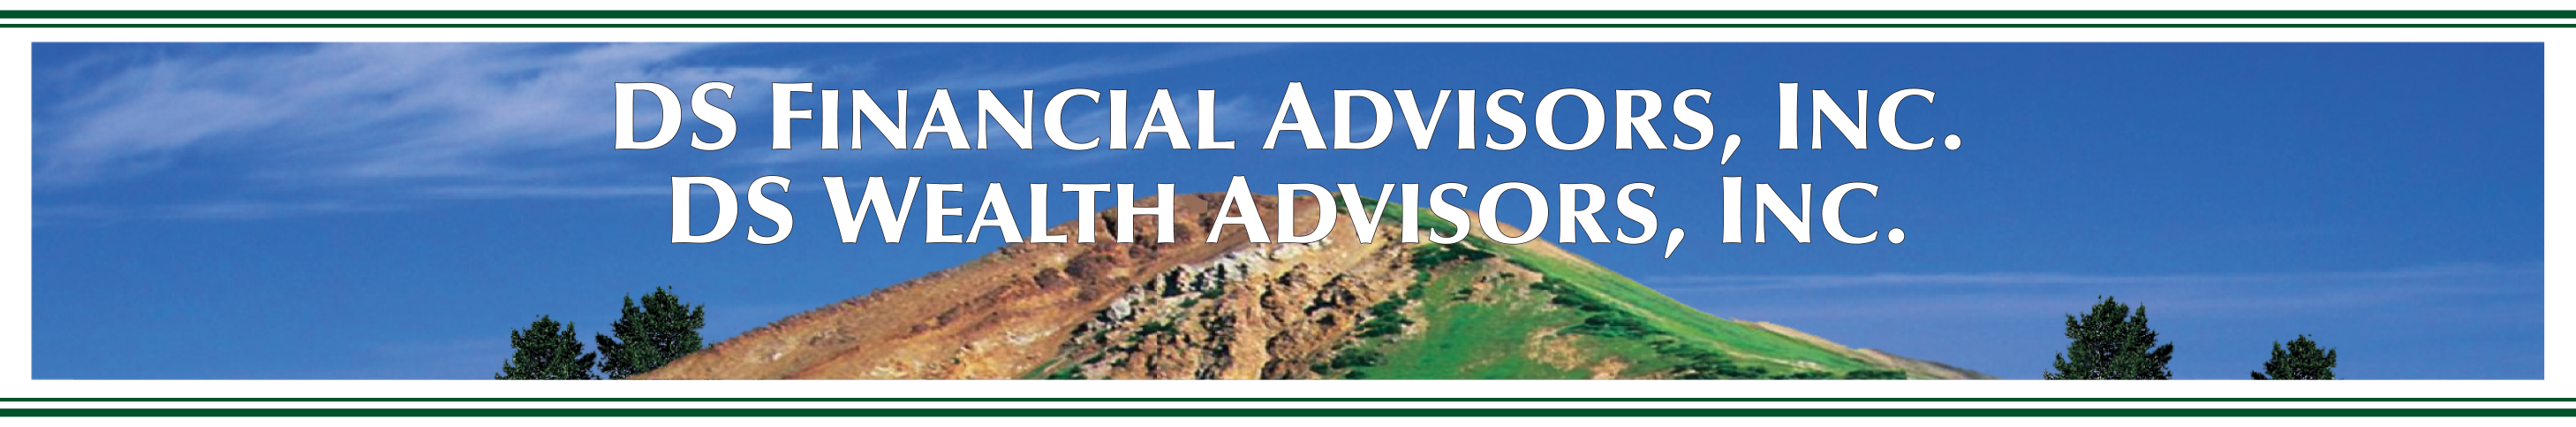 DS Wealth Advisors, Inc.